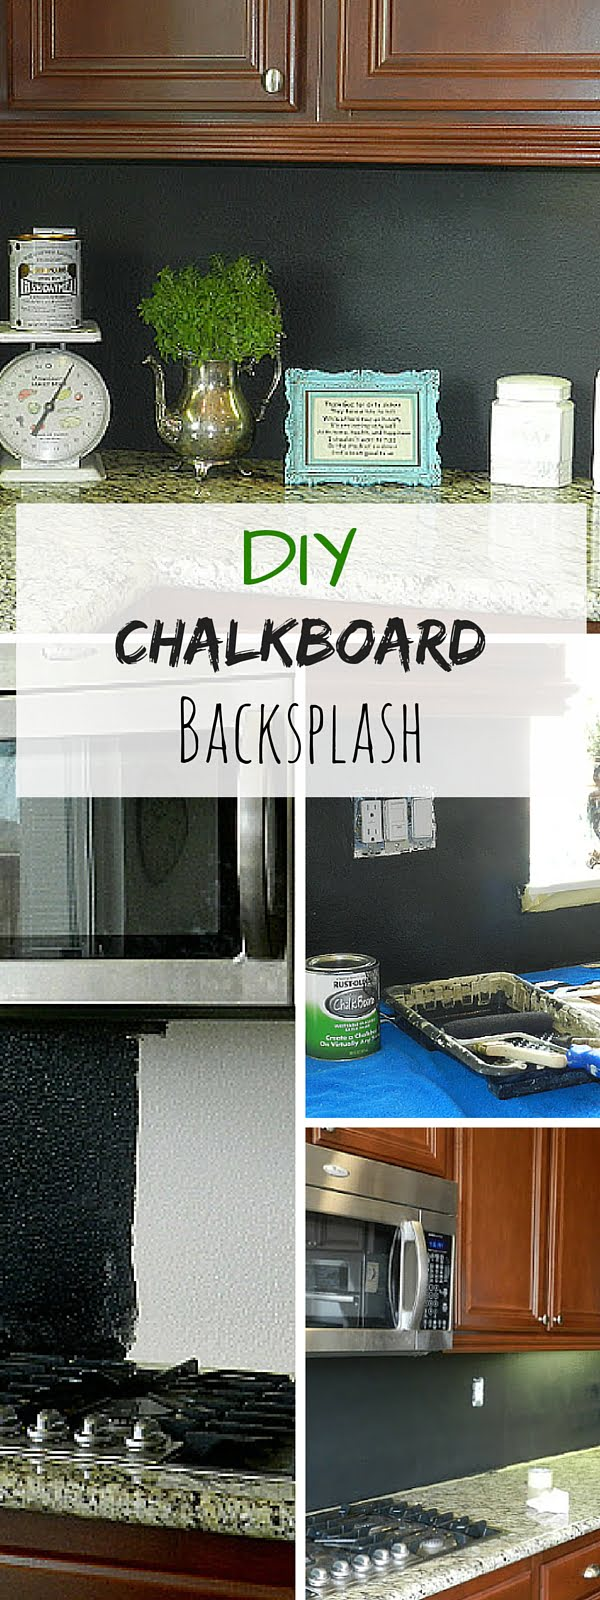 Check out the tutorial: #DIY Chalkboard Backsplash #crafts #homedecor